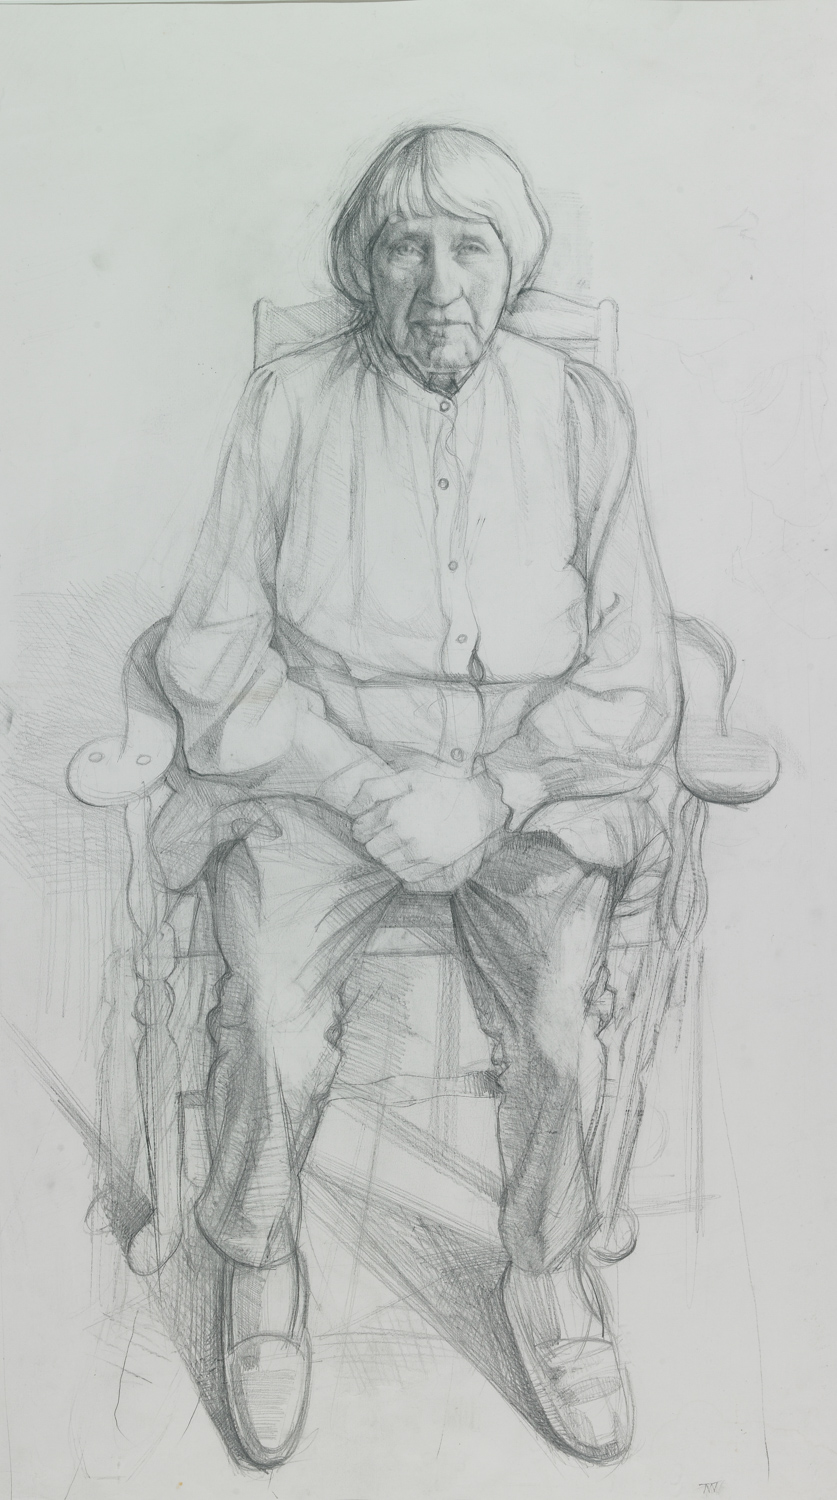 "'Mary Spencer Watson, Sculptor'  83x46cm (33""x 18"") pencil on paper. Prince of Wales Drawing Award 2013. Private collection."